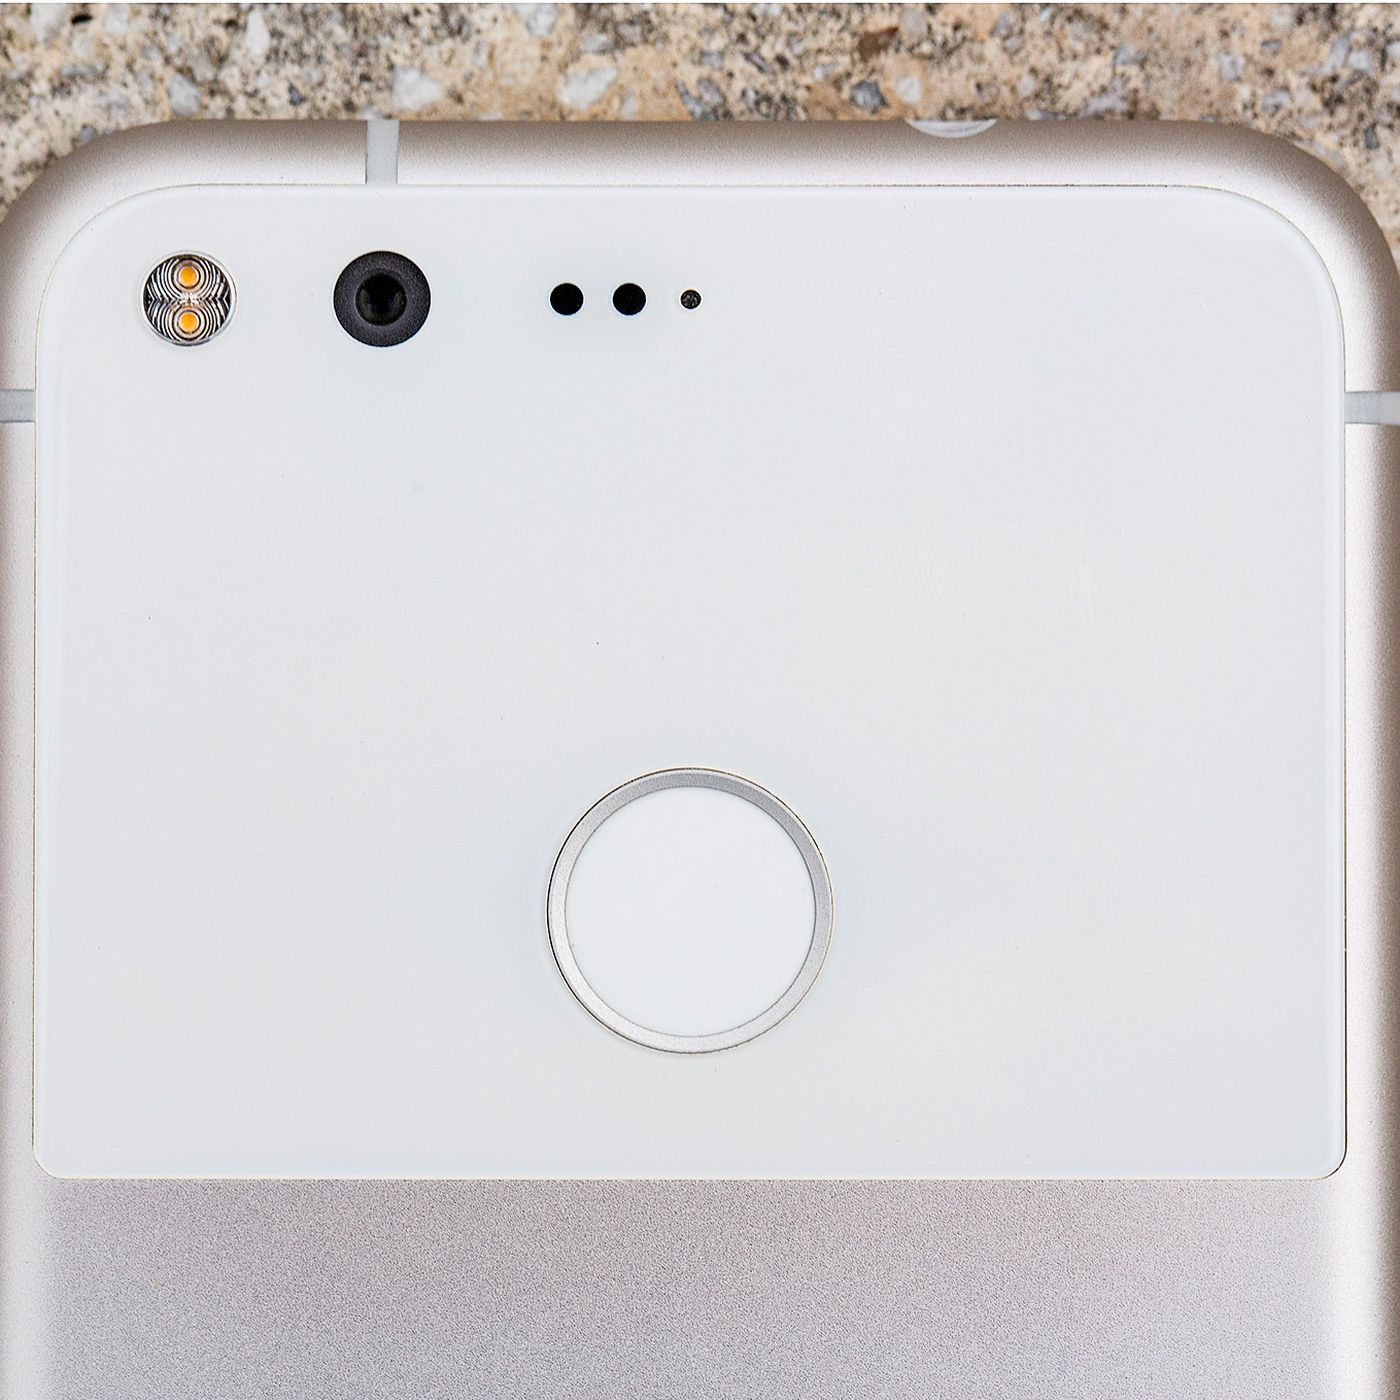 How the Pixel's software helped make Google's best camera